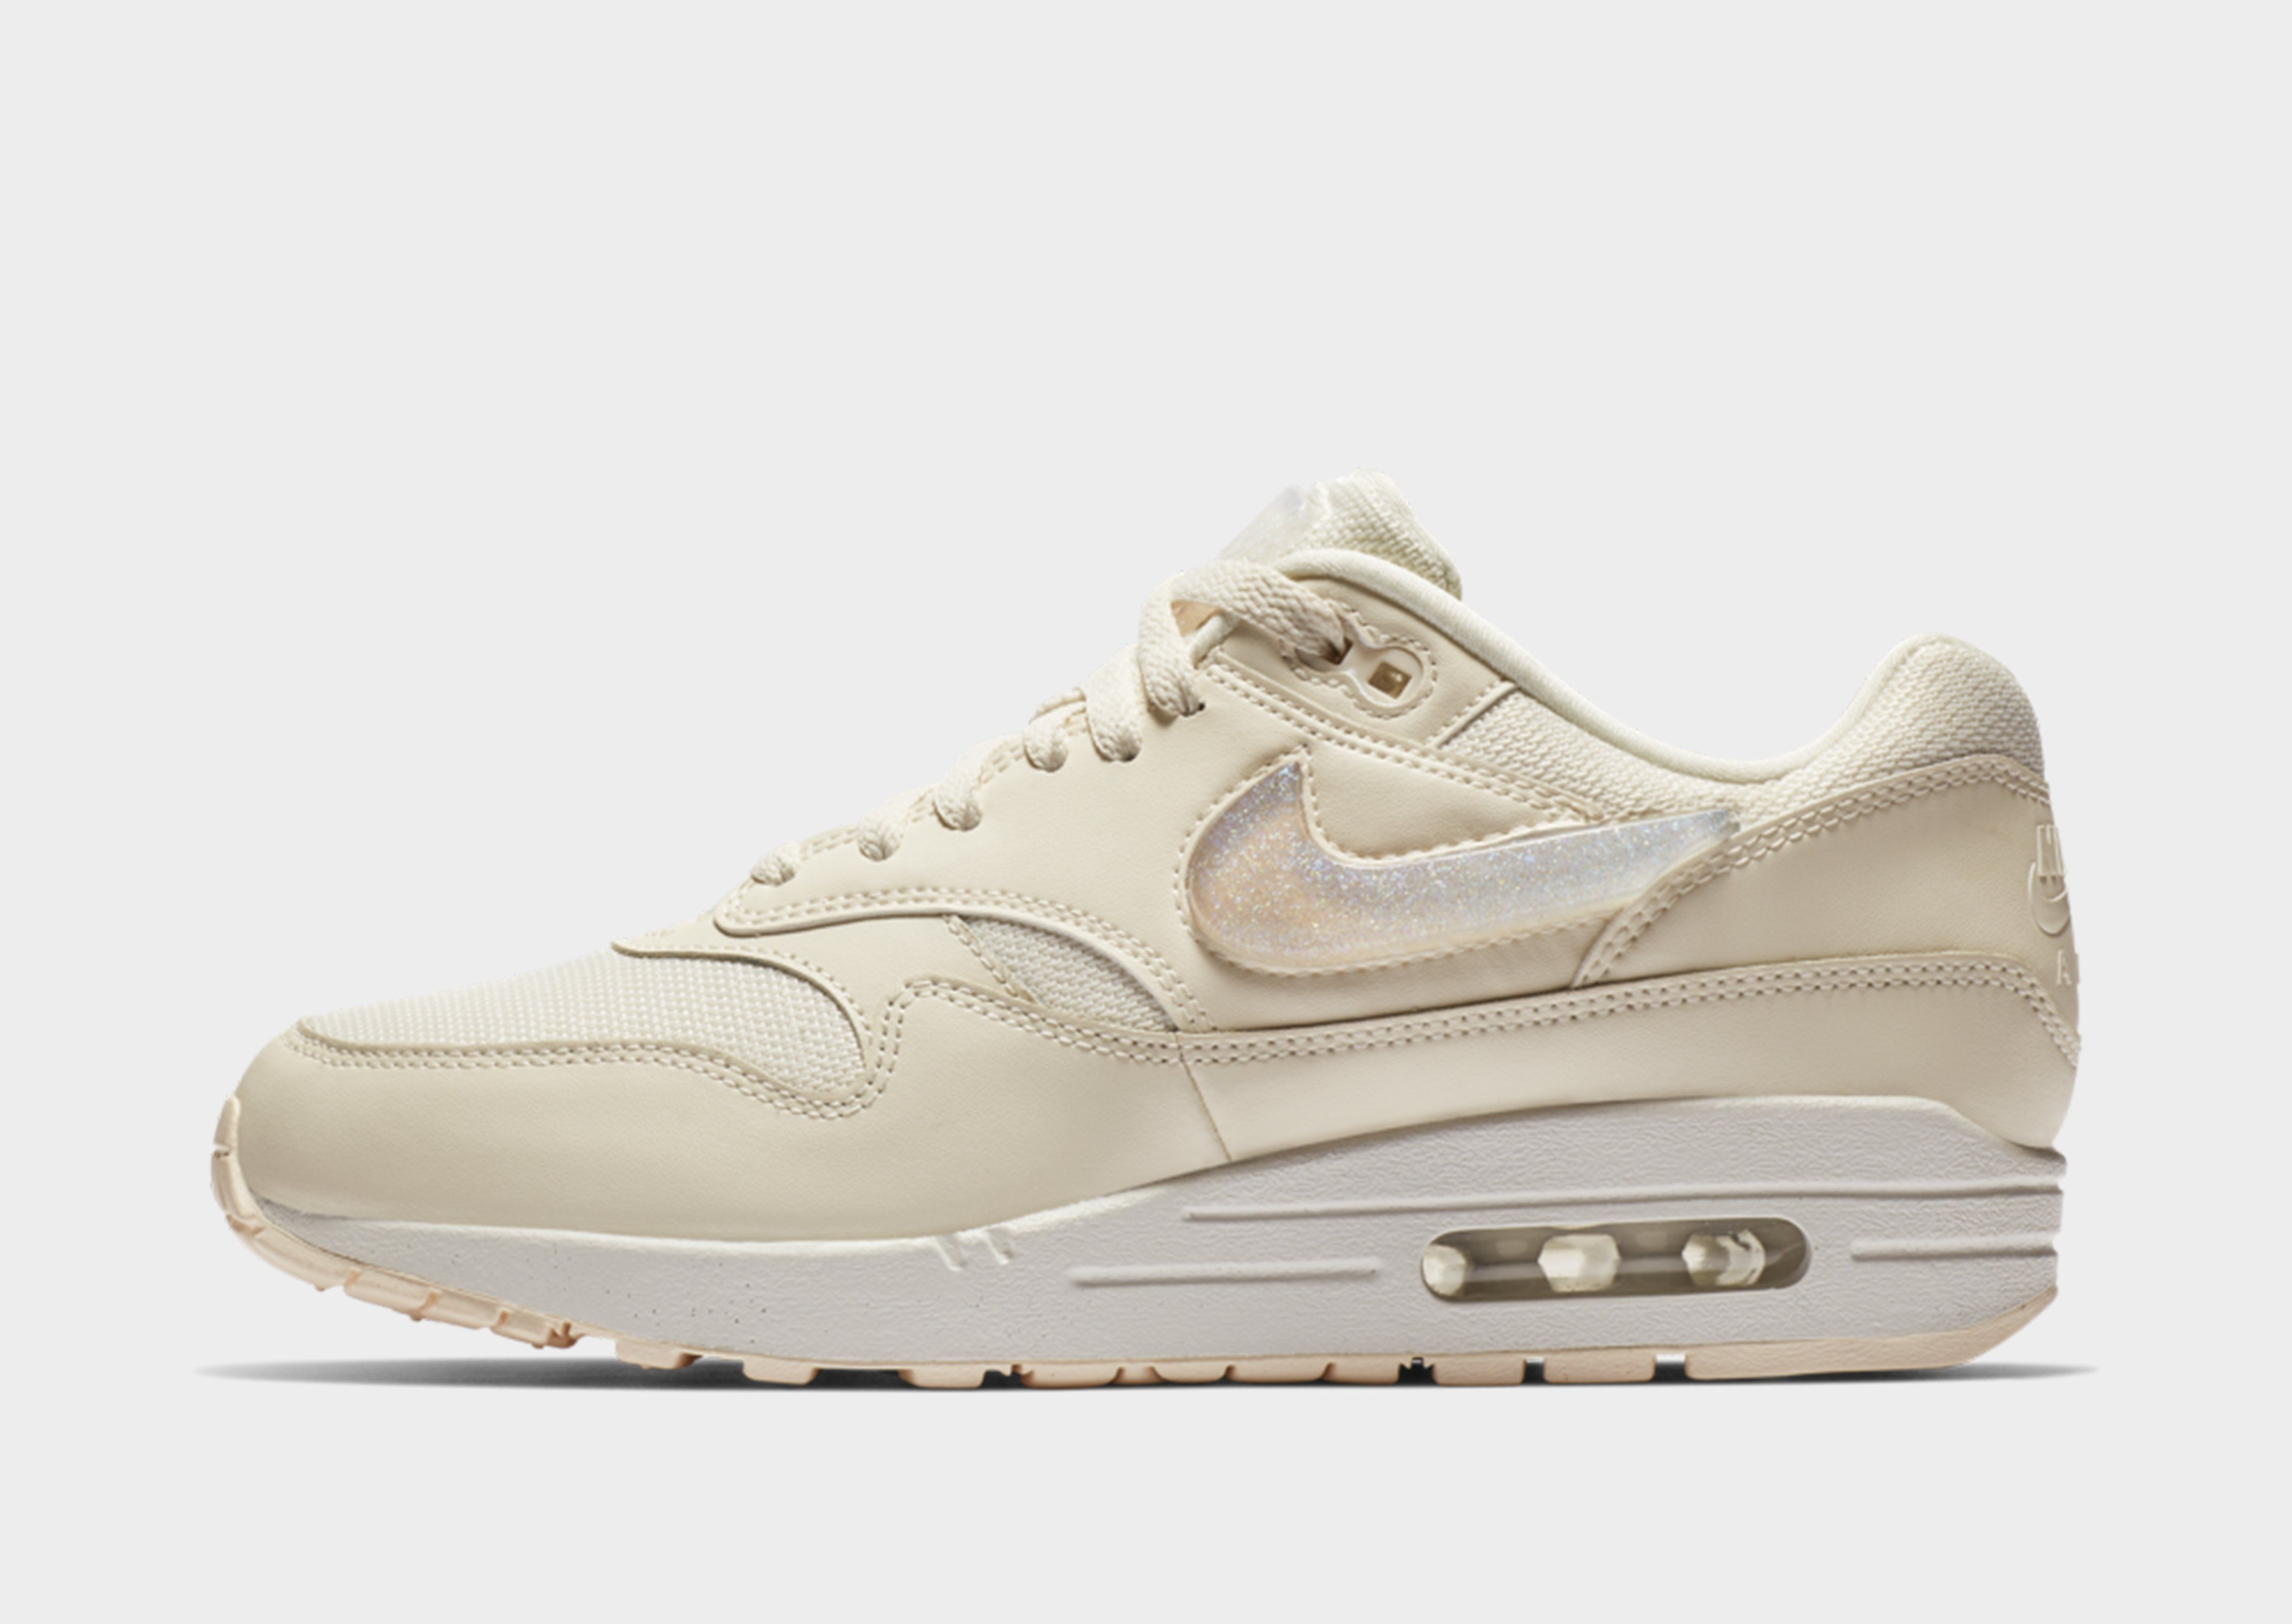 Nike Air Max 1 Jewel Swoosh Women's